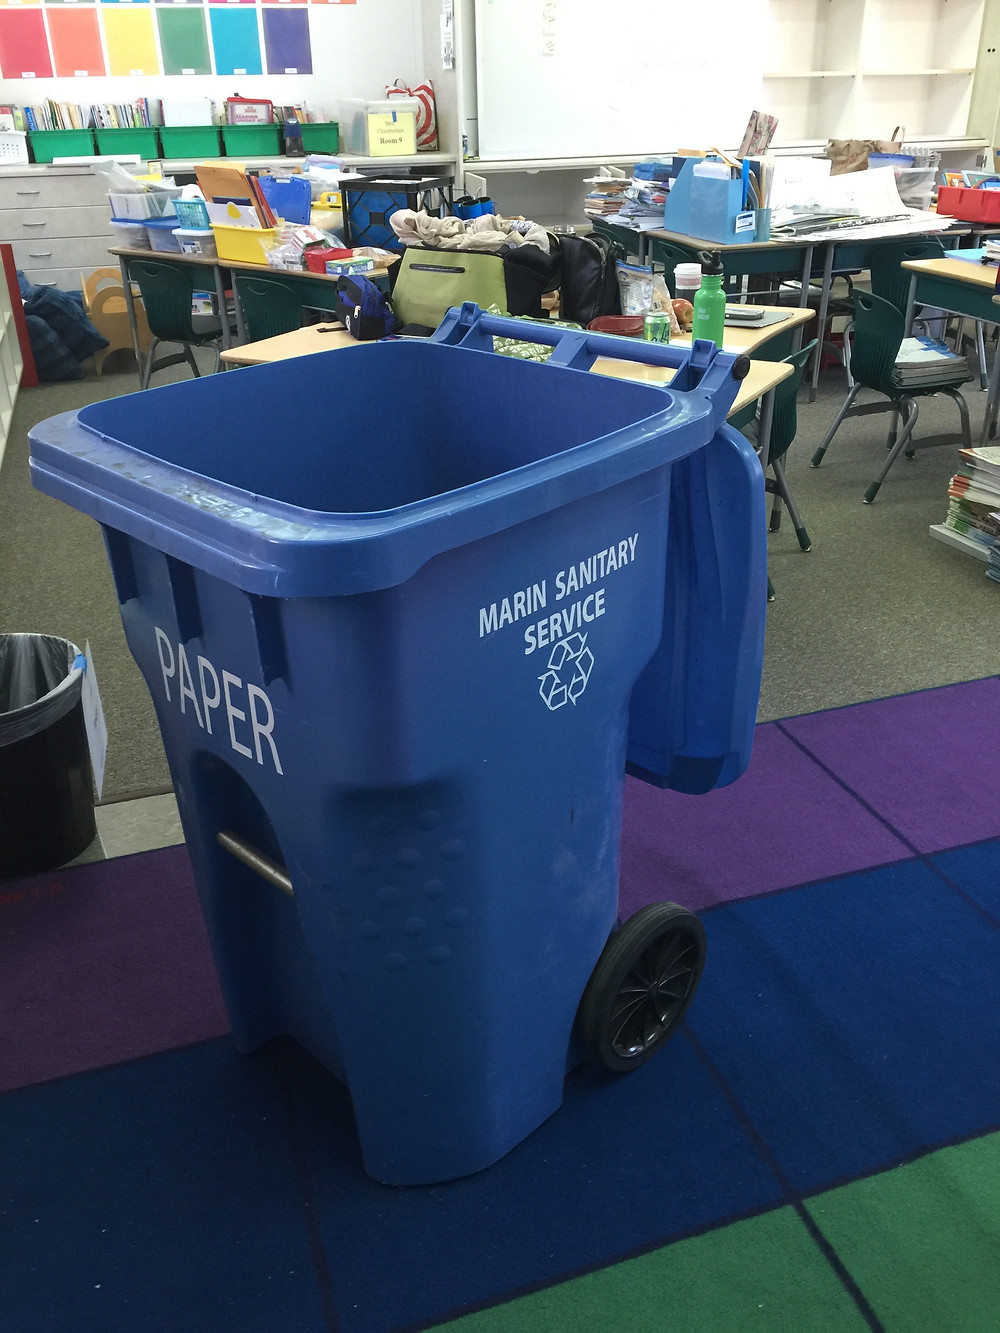 OLWH: Back to School - Organizing a Classroom / A giant blue paper recycling bin from the Marin Sanitary Service sits in the classroom, ready to receive loads of outdated papers for recycling